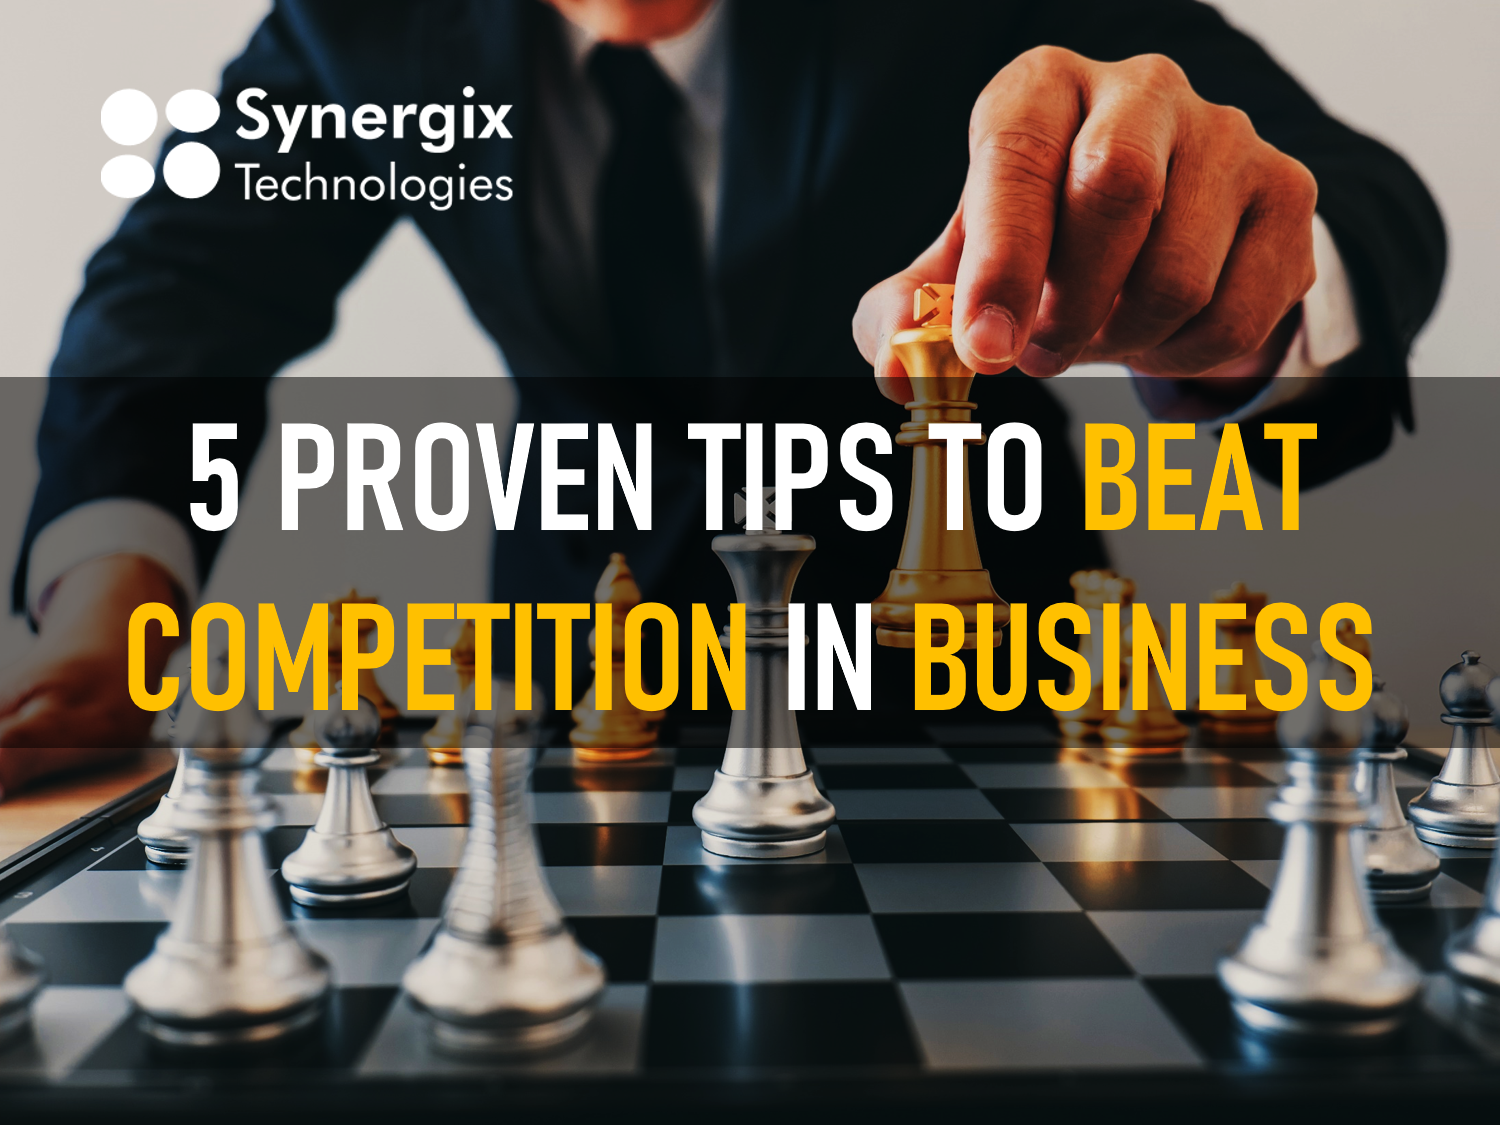 5 Proven Tips To Beat The Competition In Business